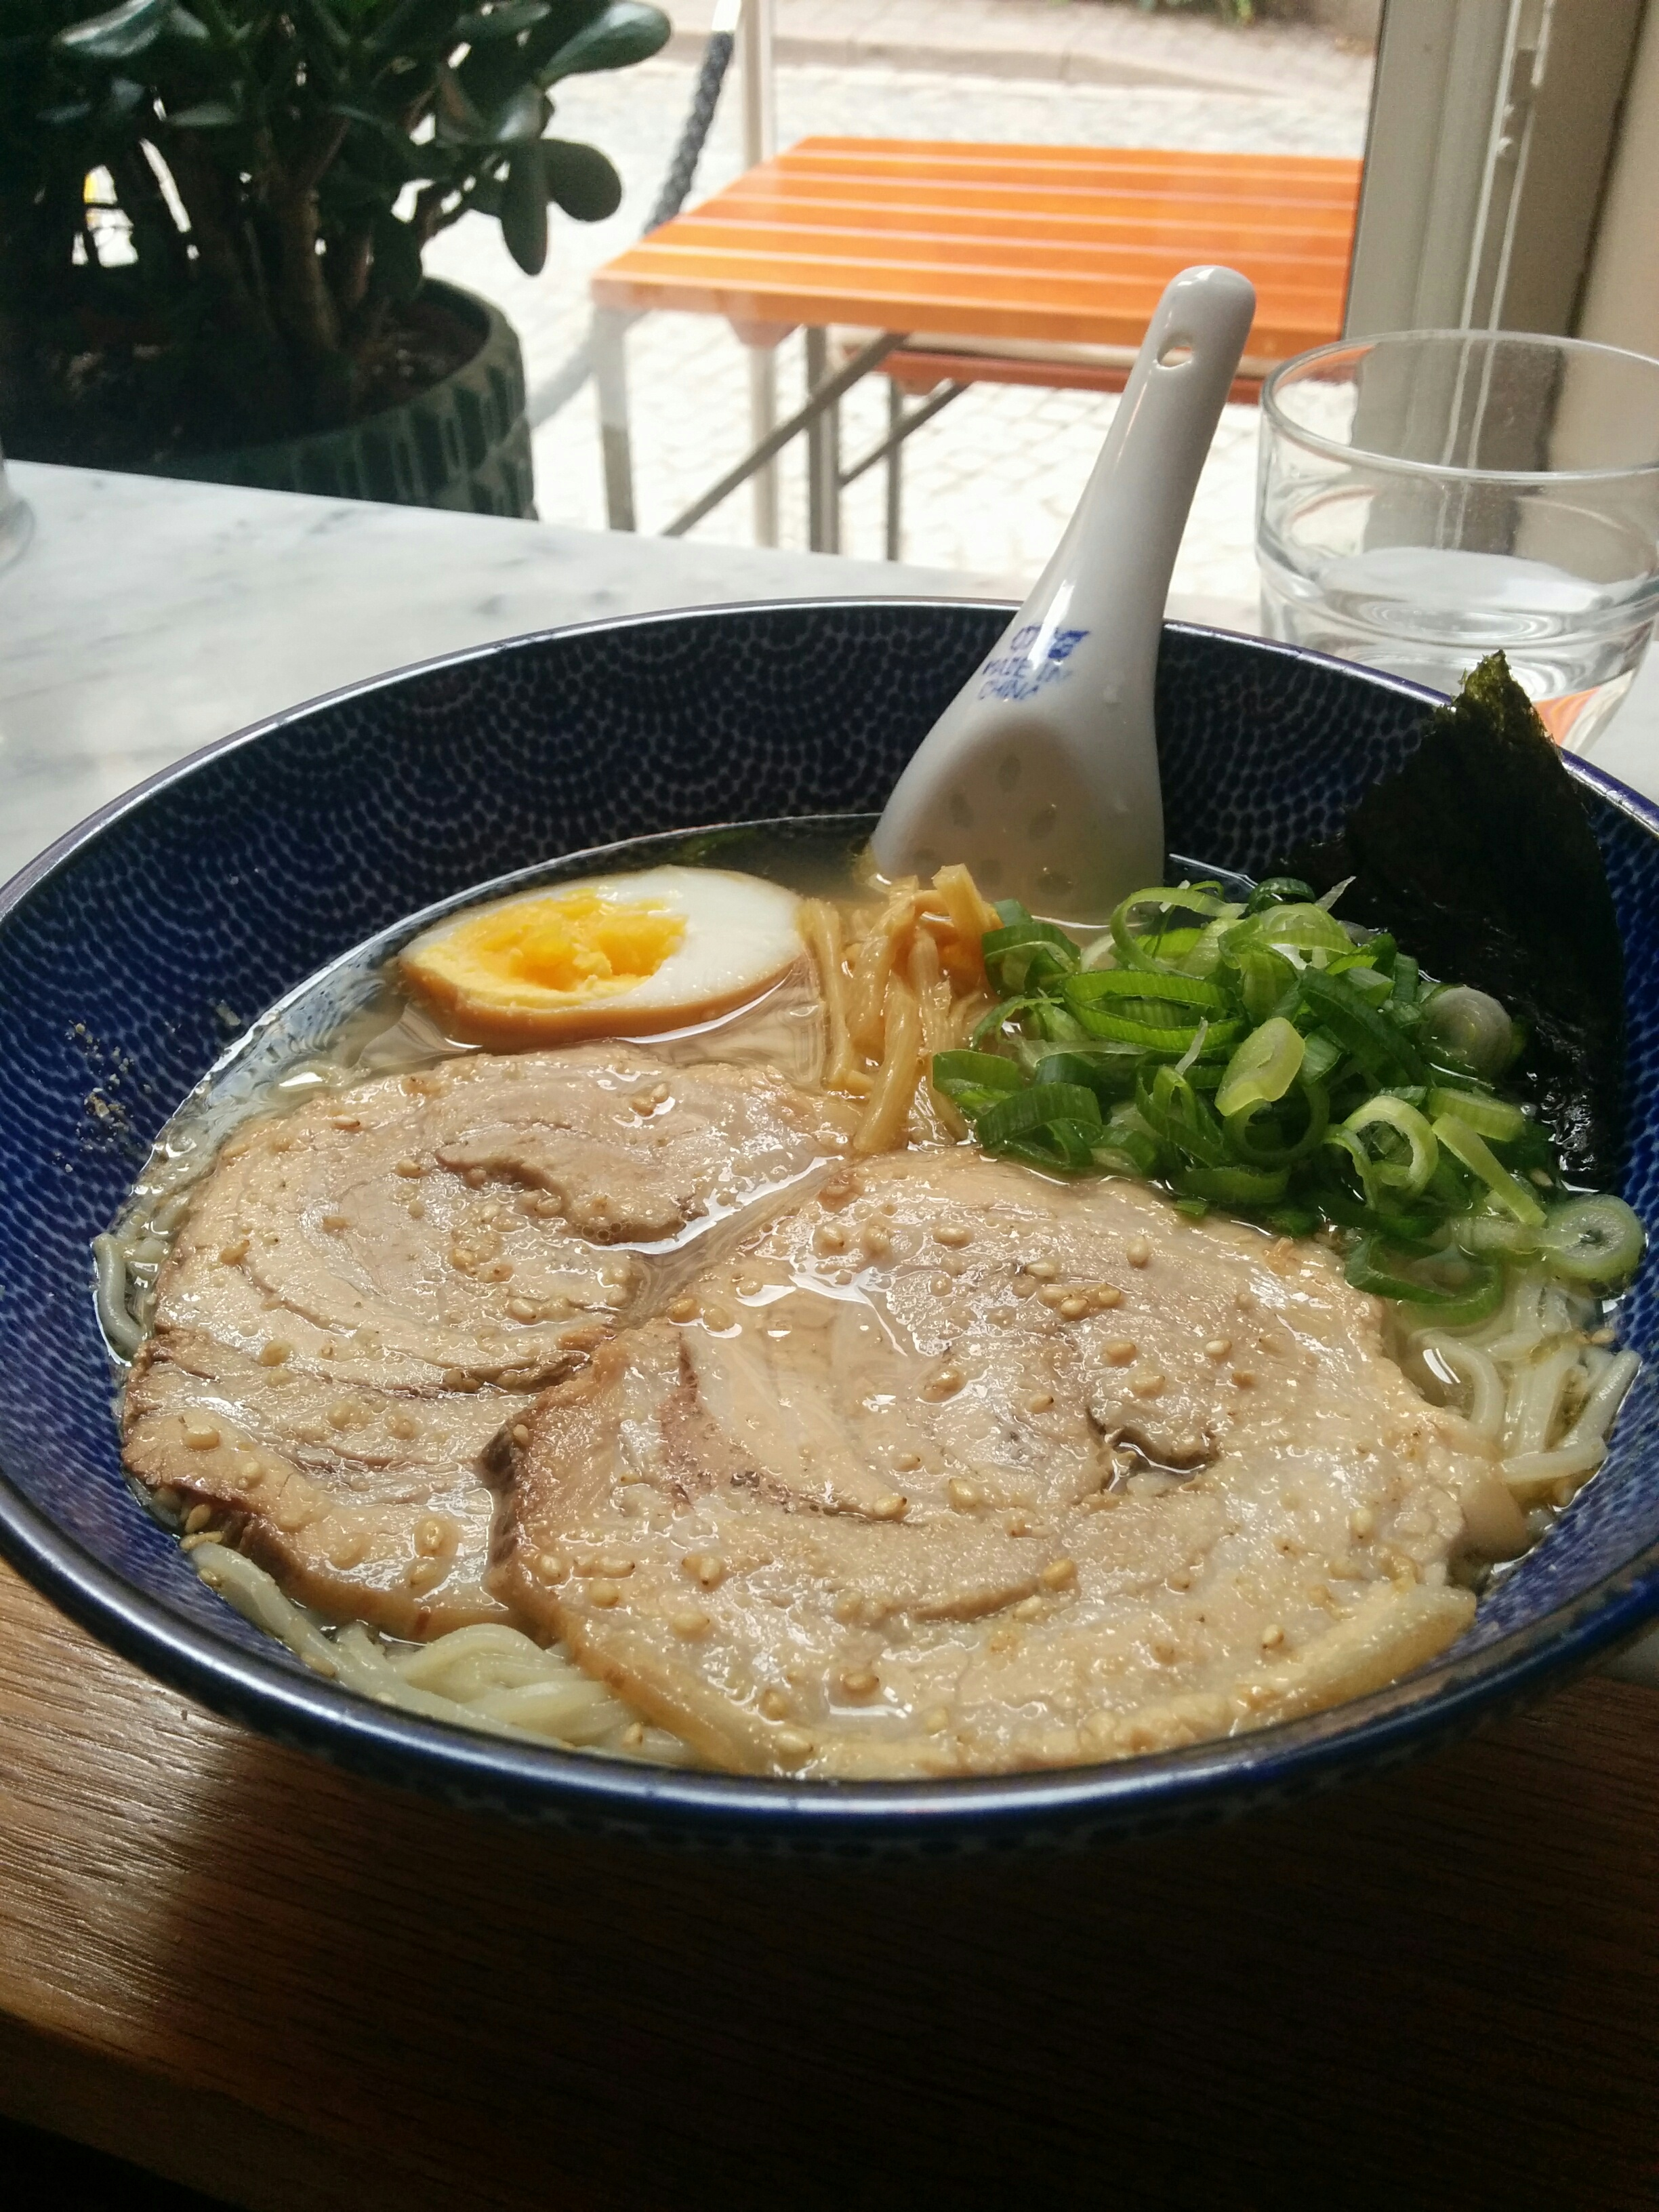 Ramen, last time I ate a really good one was in Hong Kong.